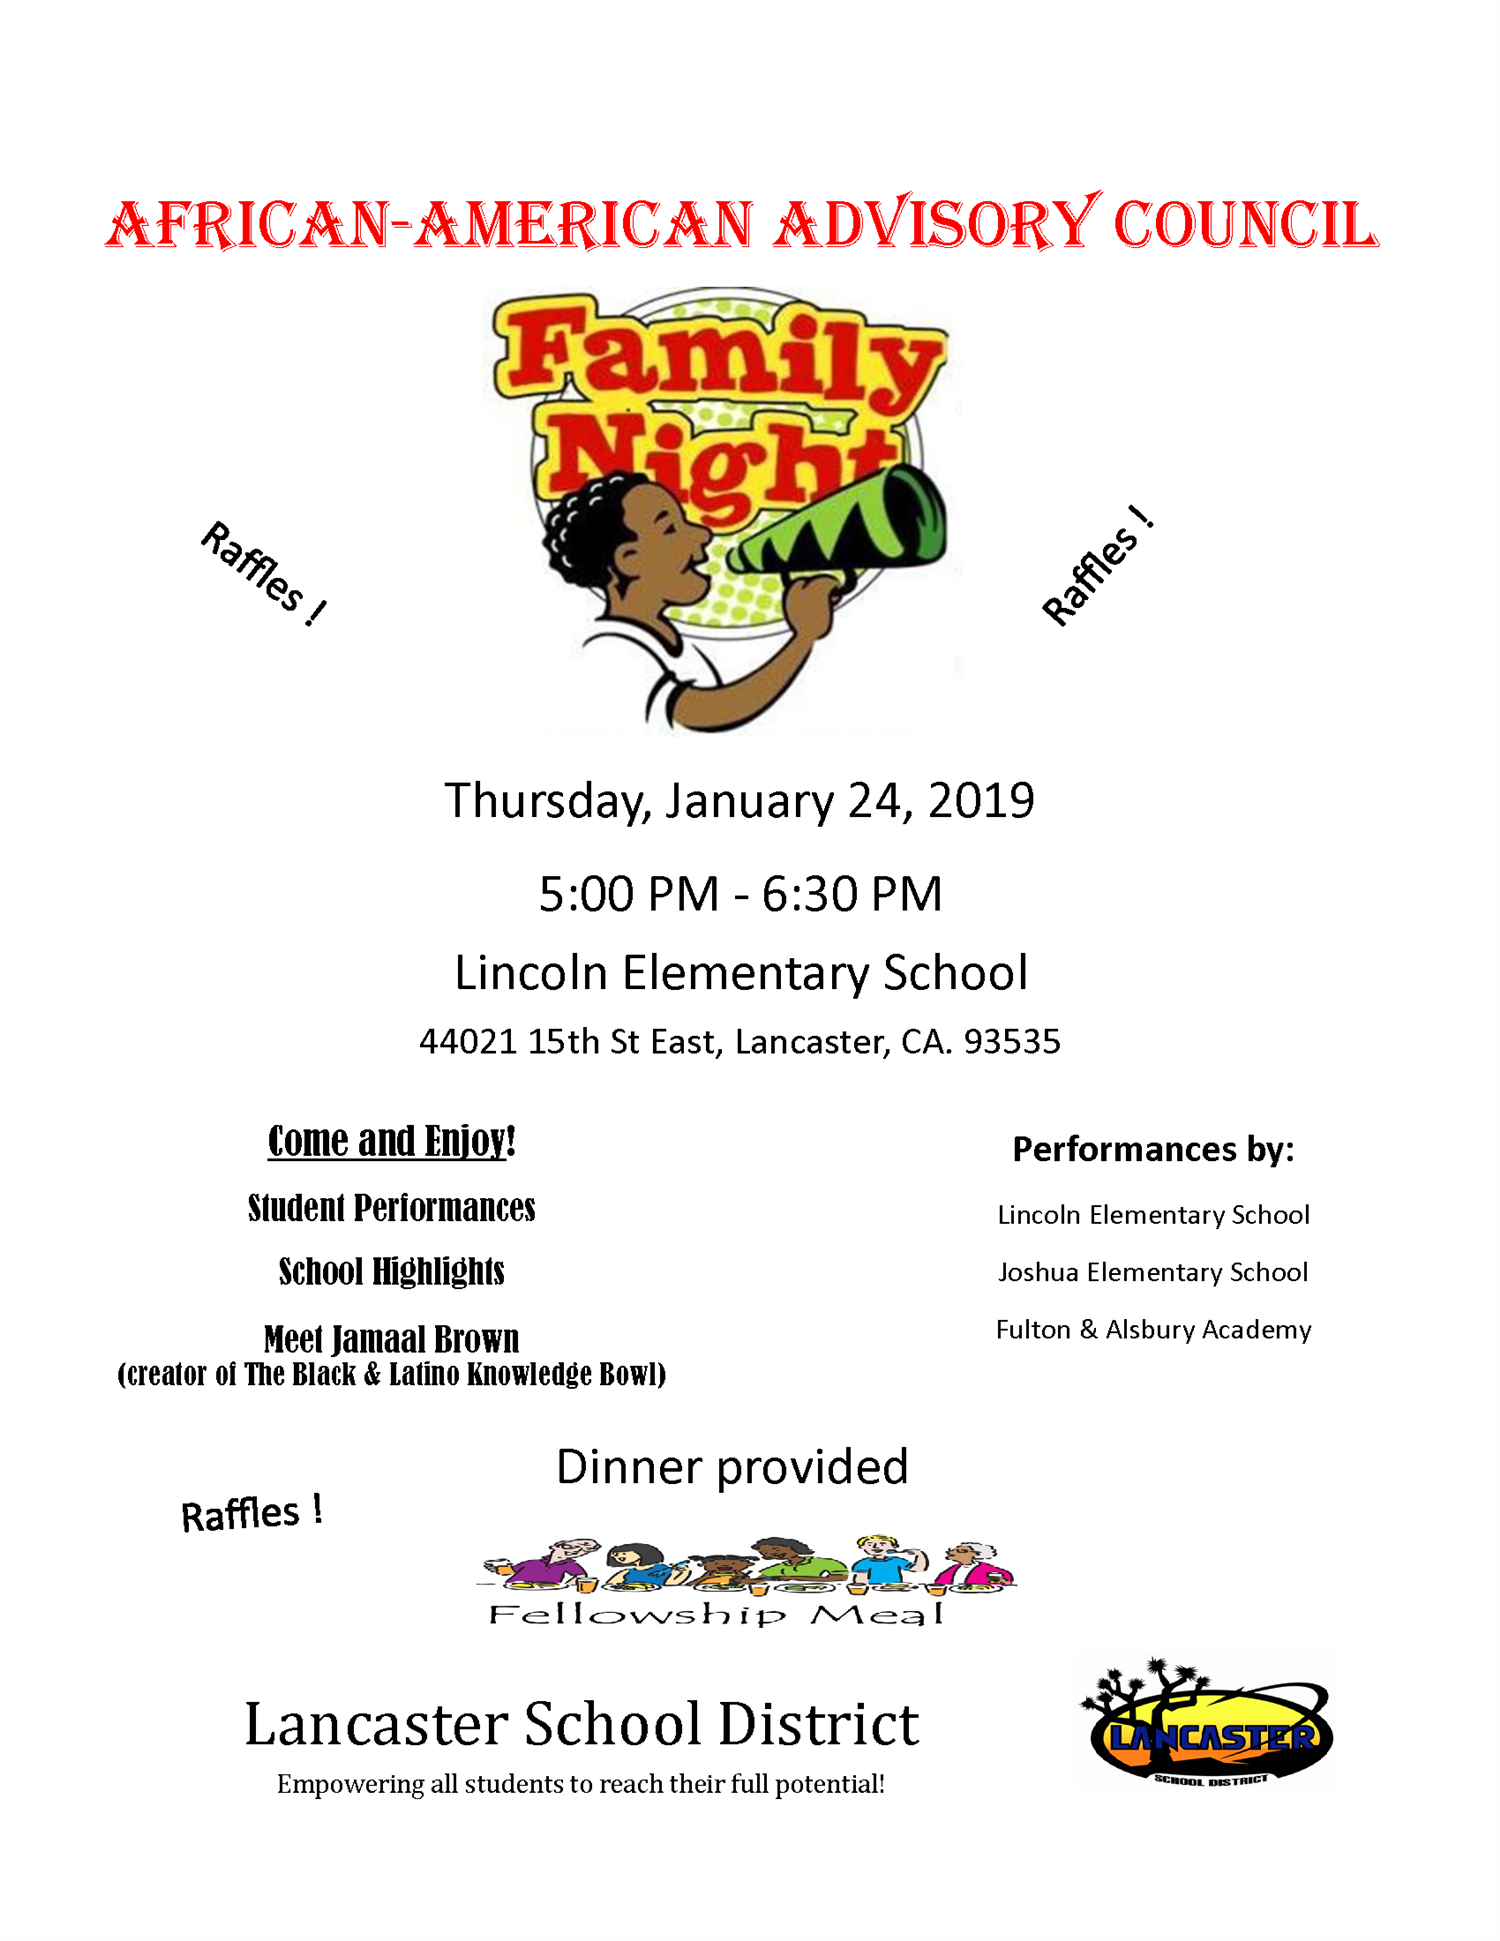 AAAC Family Night